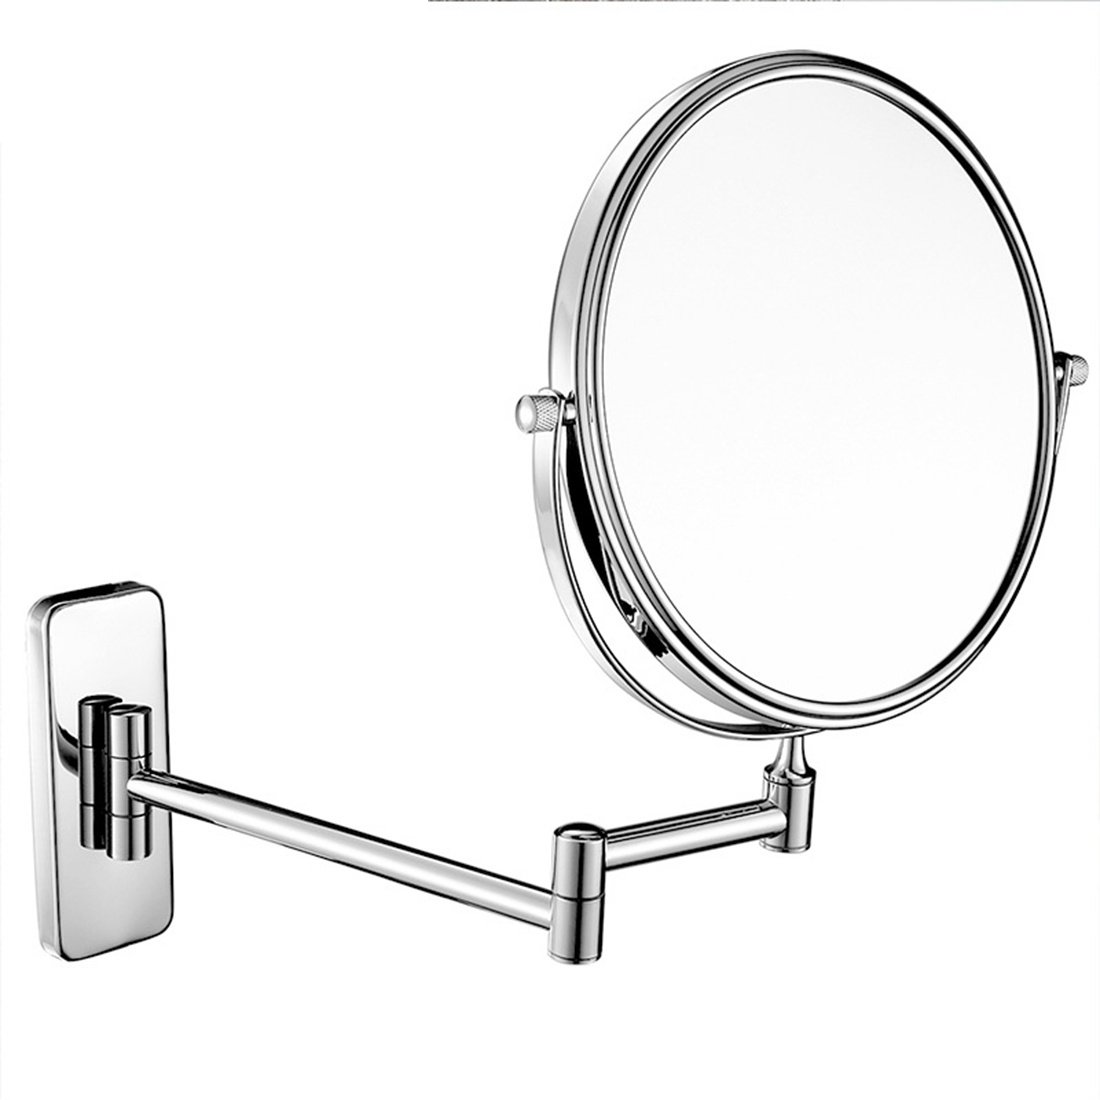 Ysayc Makeup Mirror Wall Mounted Double-sided Magnifying Extending Round Rotatory Bath Spa Hotel Table Beauty Chrome Finished Vanity Mirror Gift, 8 inch